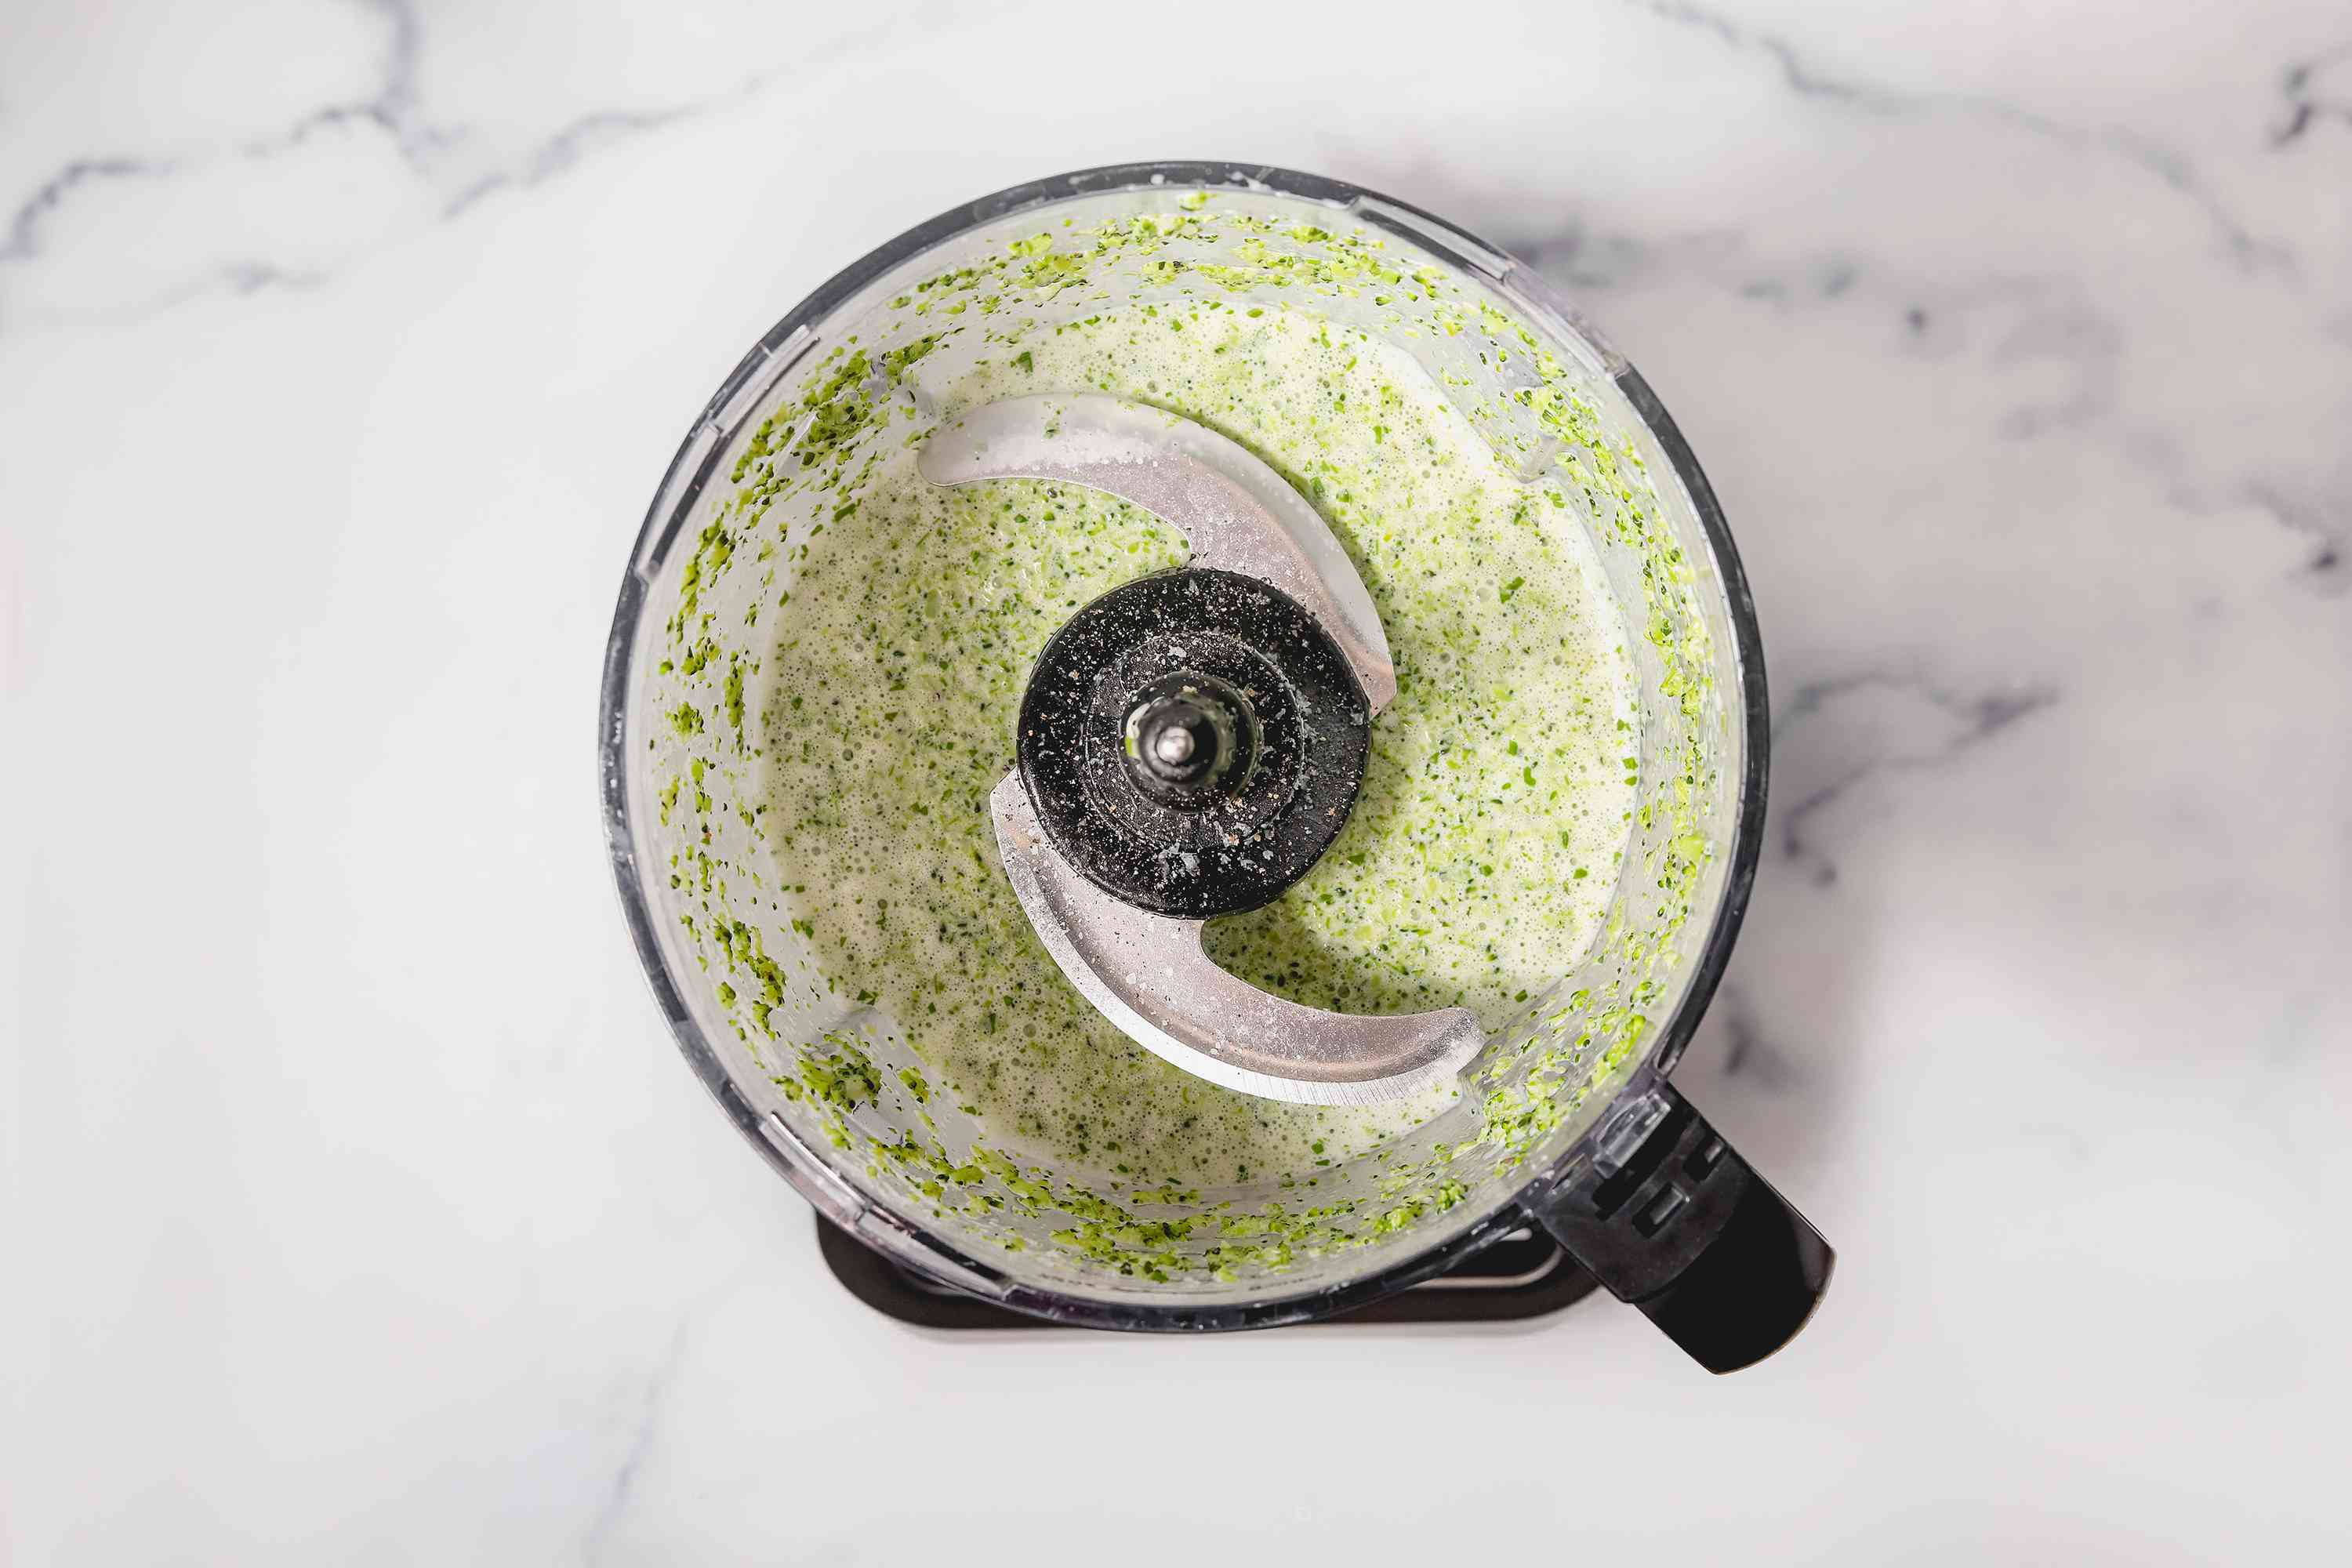 Basil, butter, cream, and Parmesan cheese added to broccoli in a food processor